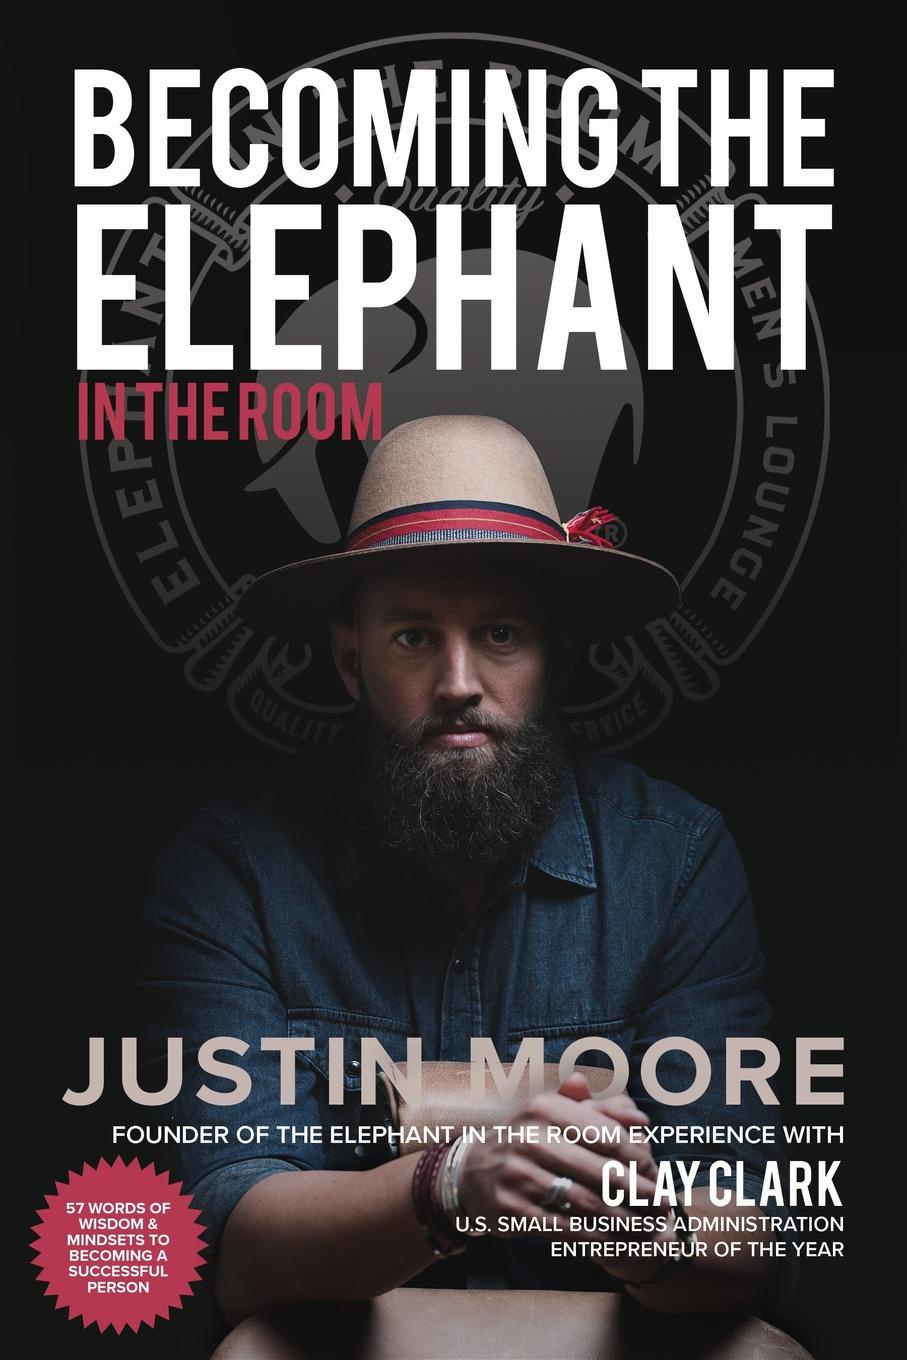 Justin Moore, Clay Clark Becoming the Elephant in the Room. 57 Words of Wisdom and Mindsets to Becoming a Successful Person becoming others